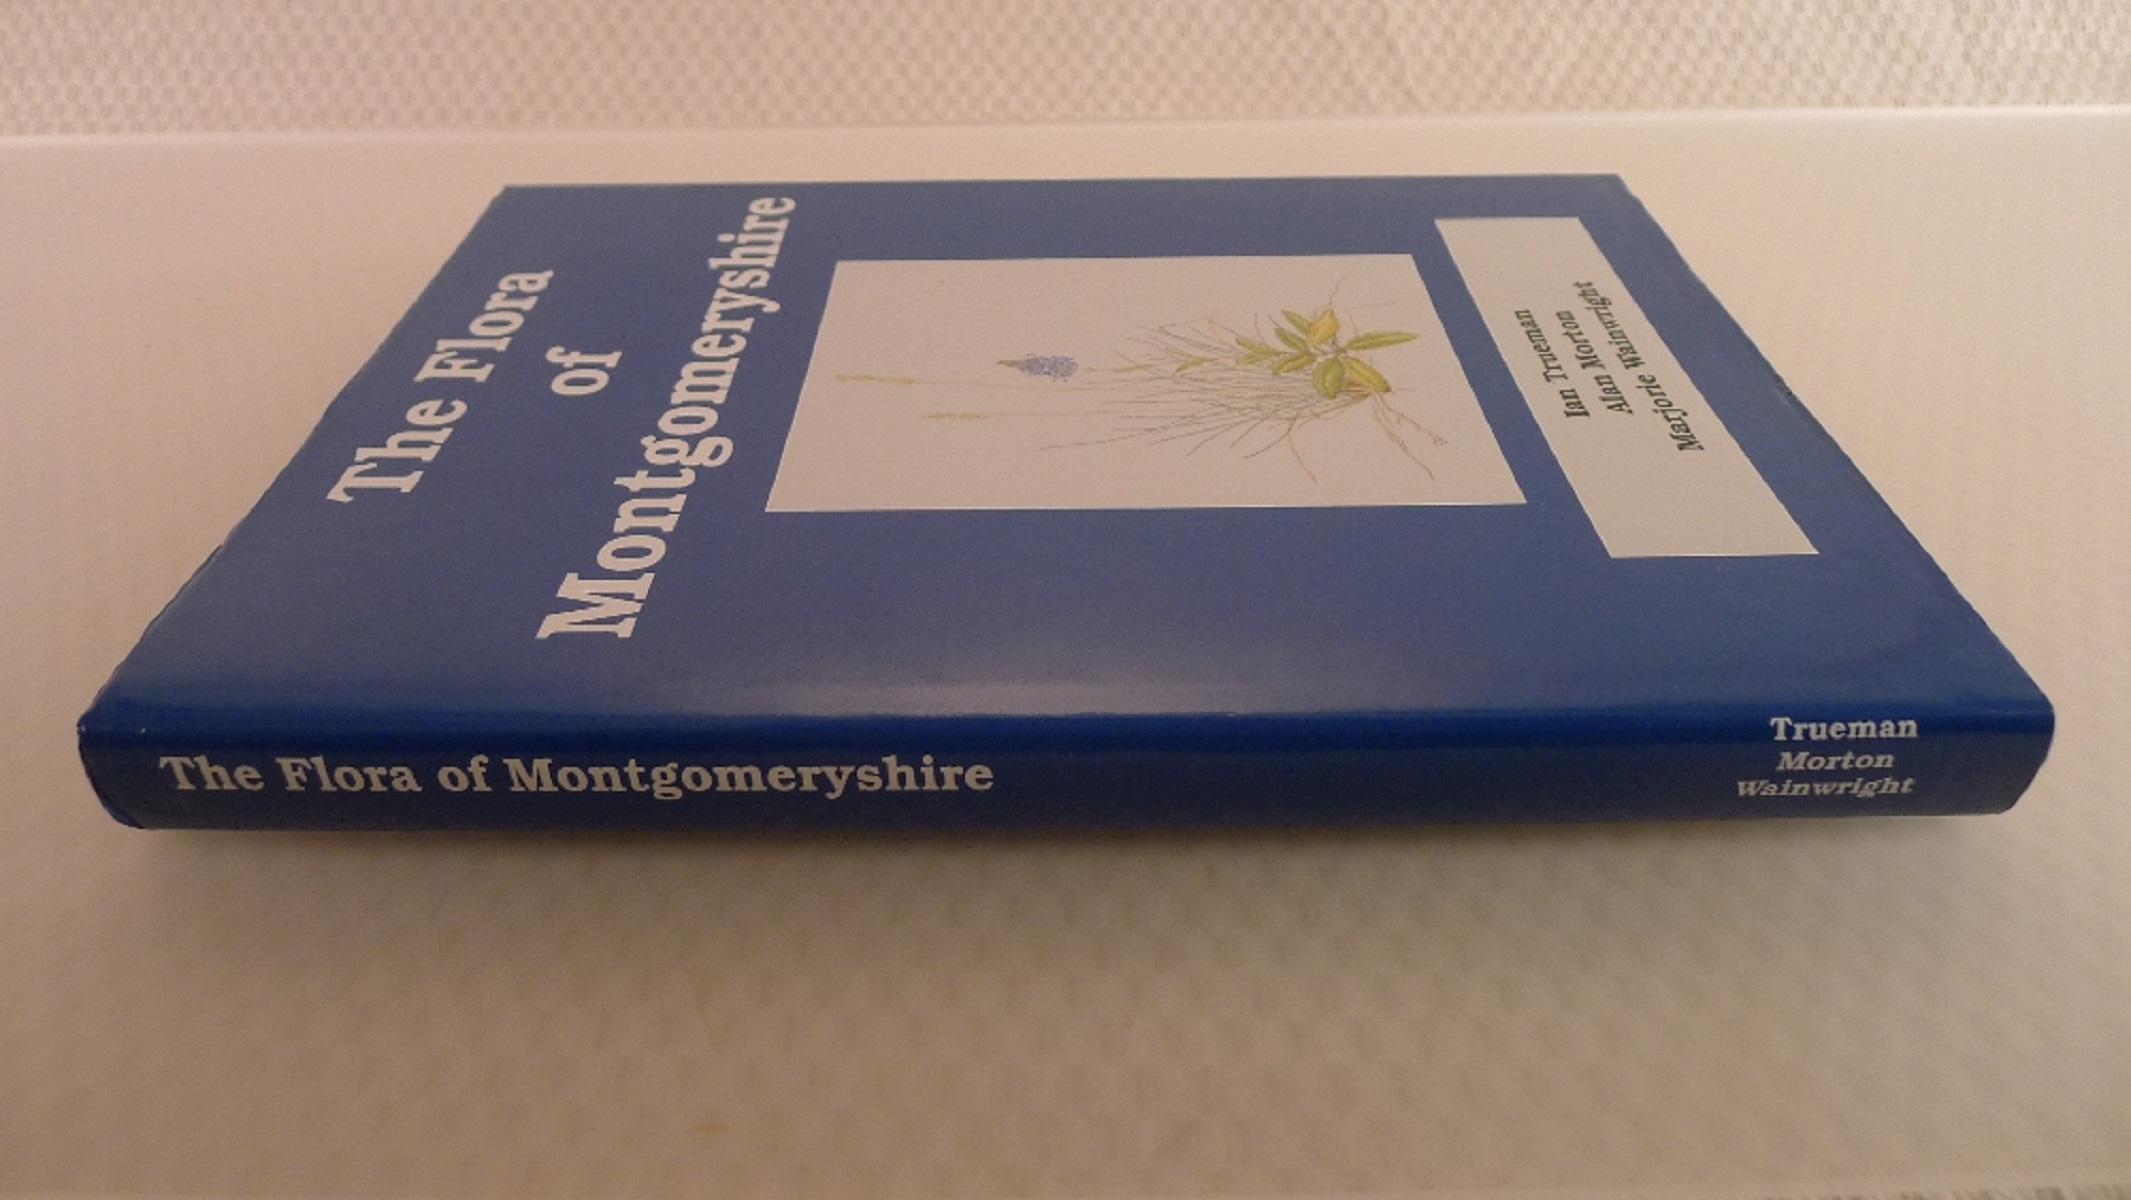 The Flora of Montgomeryshire by Ian Trueman, Alan Morton and Marjorie Wainwright published by - Image 2 of 7